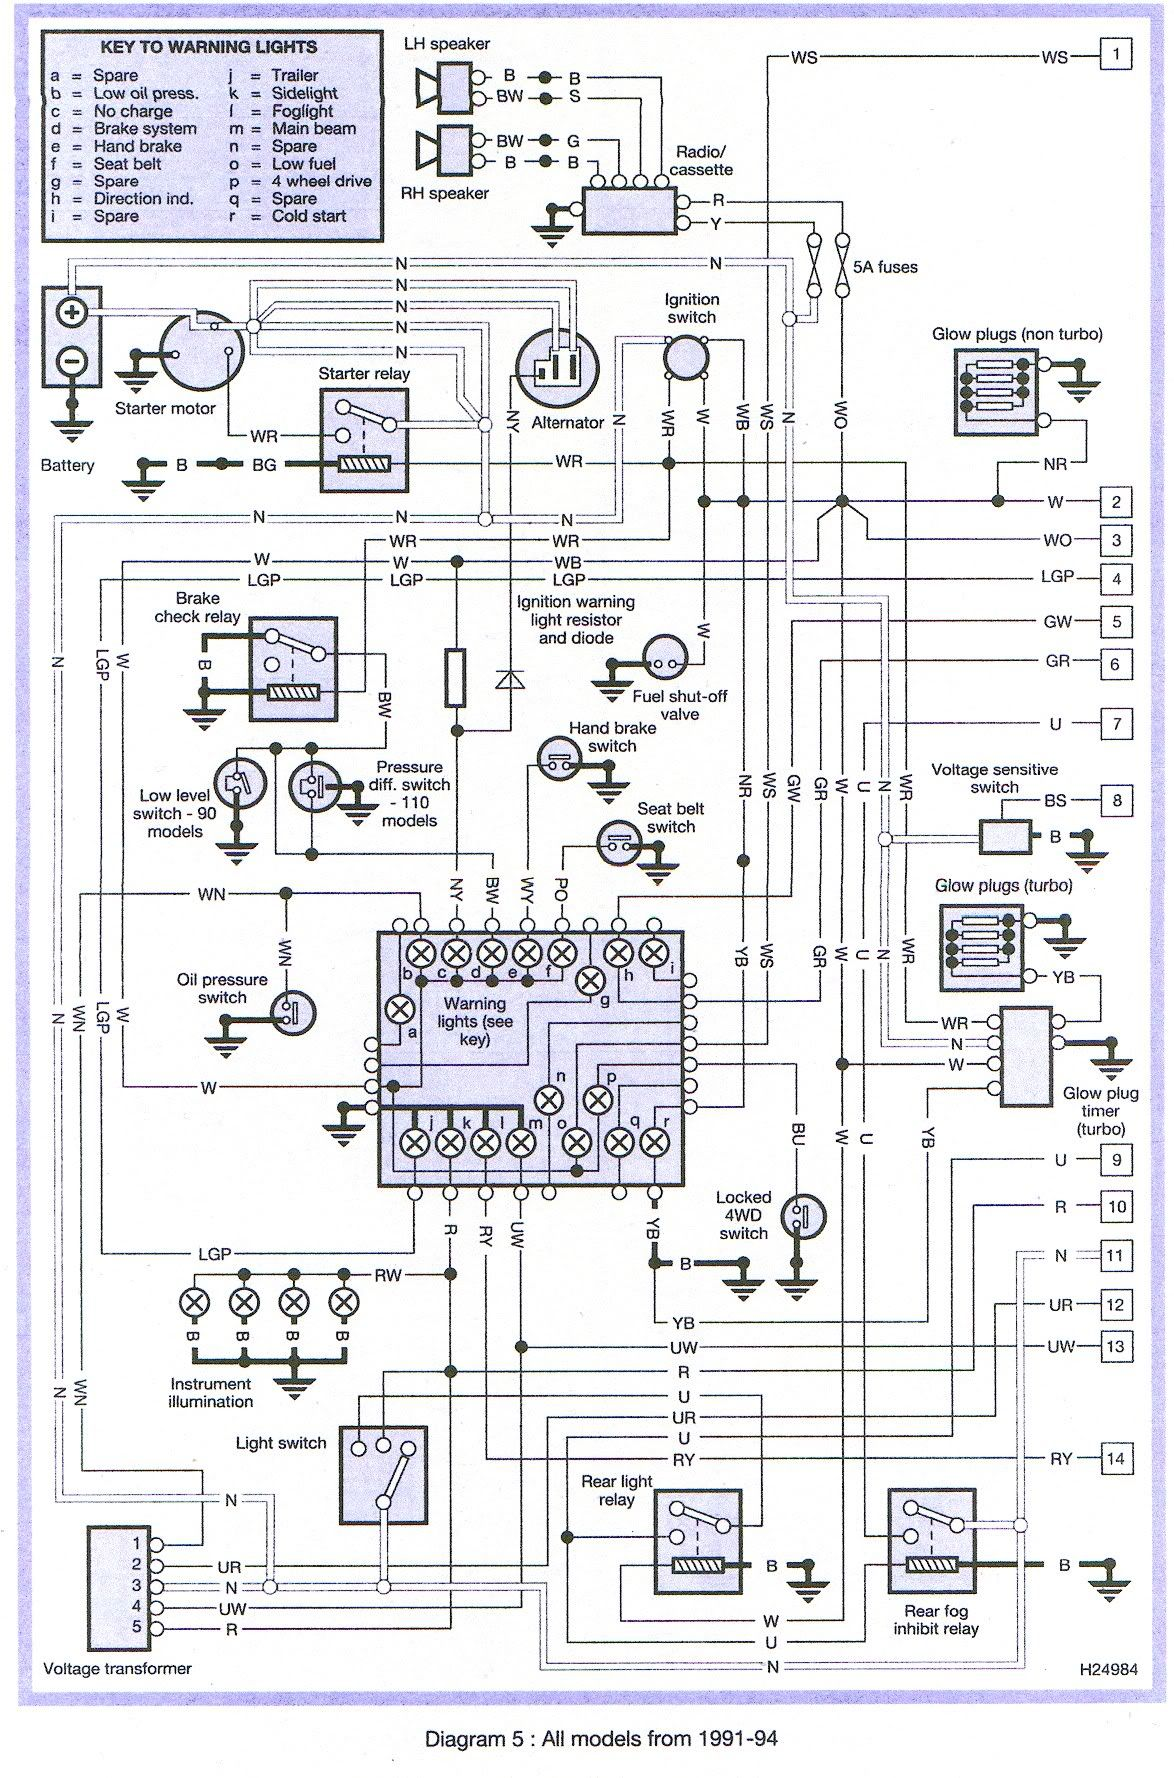 07629544bfff38ad2881b2c21312c6e6 land rover discovery wiring diagram manual repair with engine 1995 land rover discovery fuse box location at n-0.co